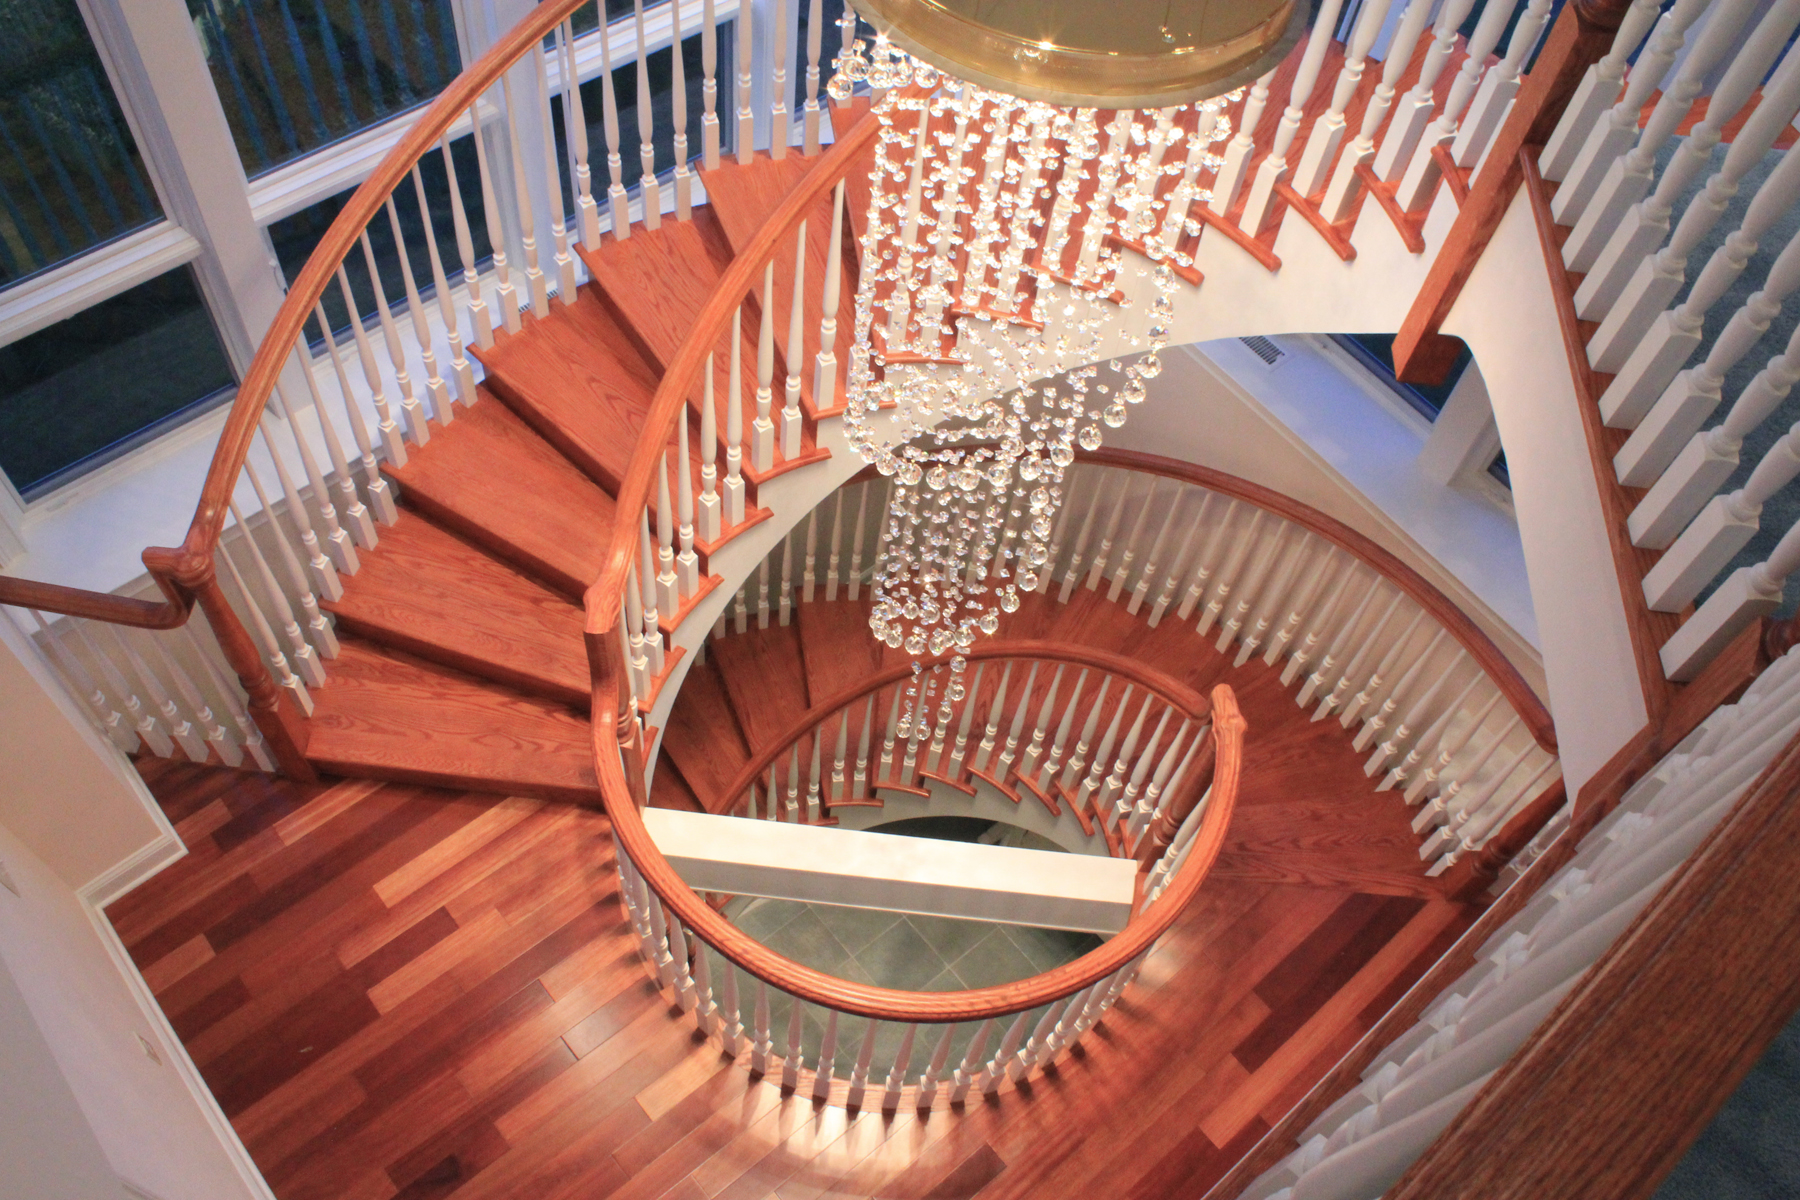 Chandelier Lighting Fixture For Spiral Staircase